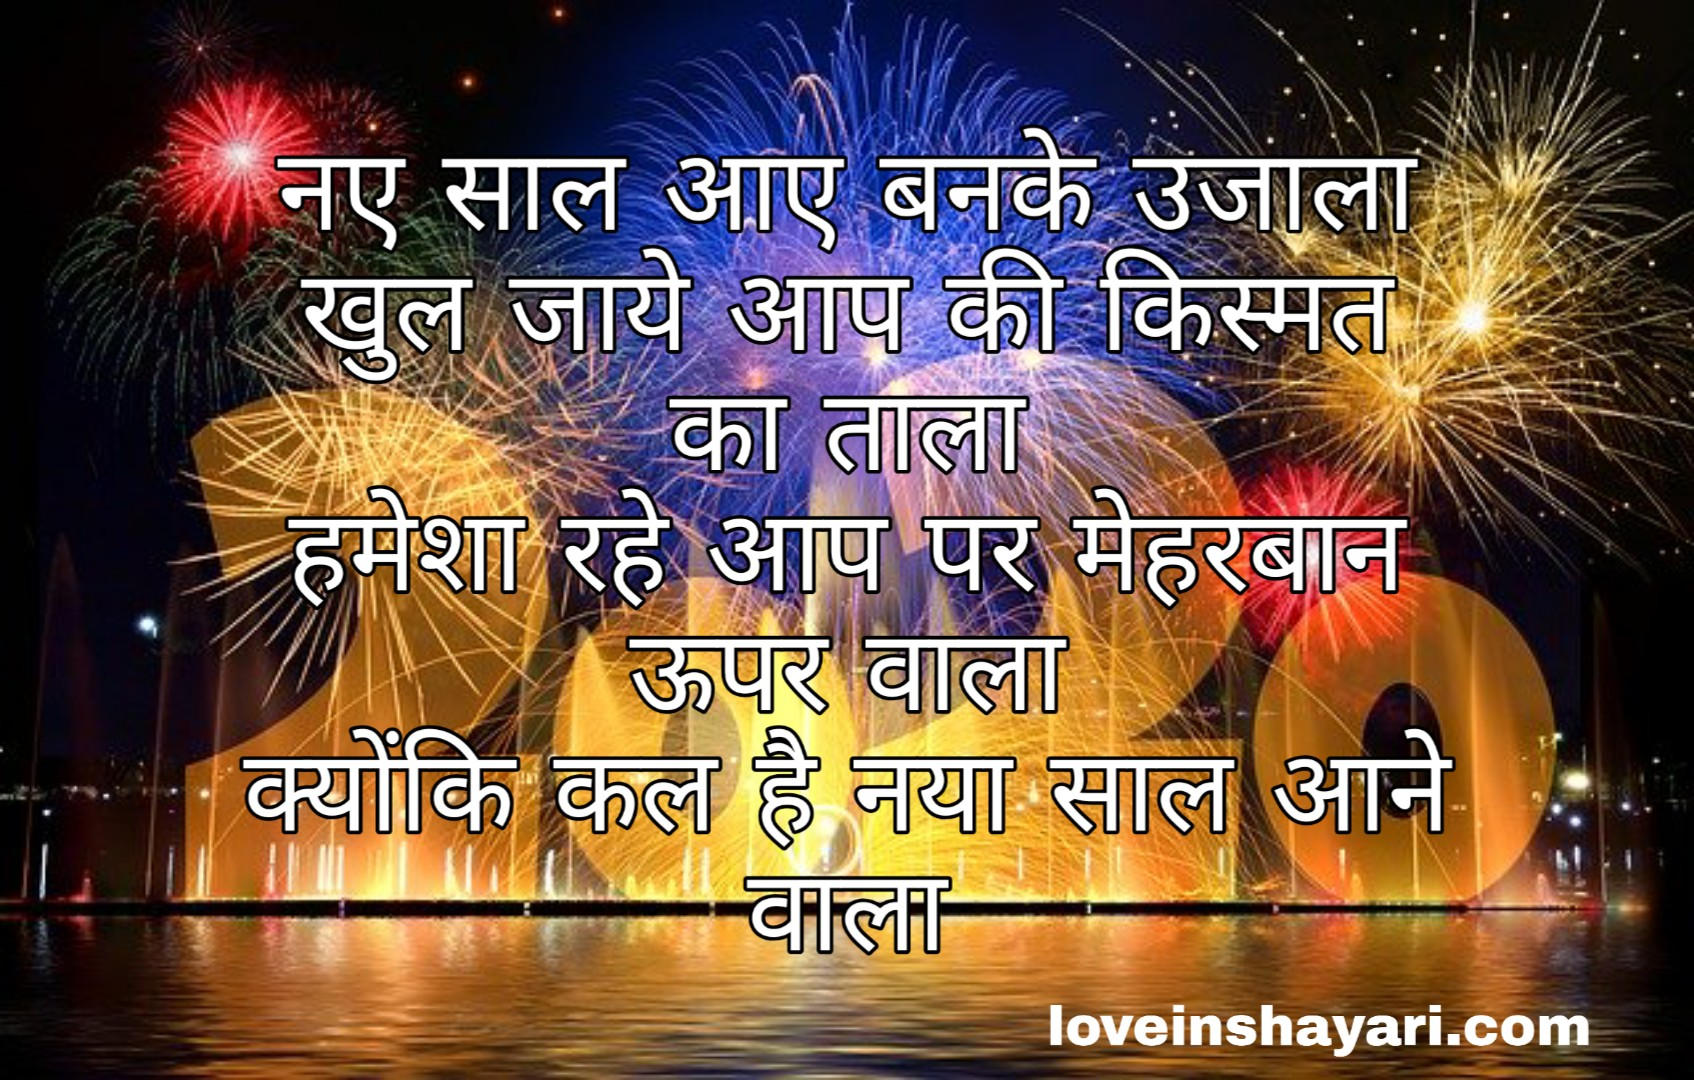 Photo of Happy New Year 2020 wishes sms Shayari With image